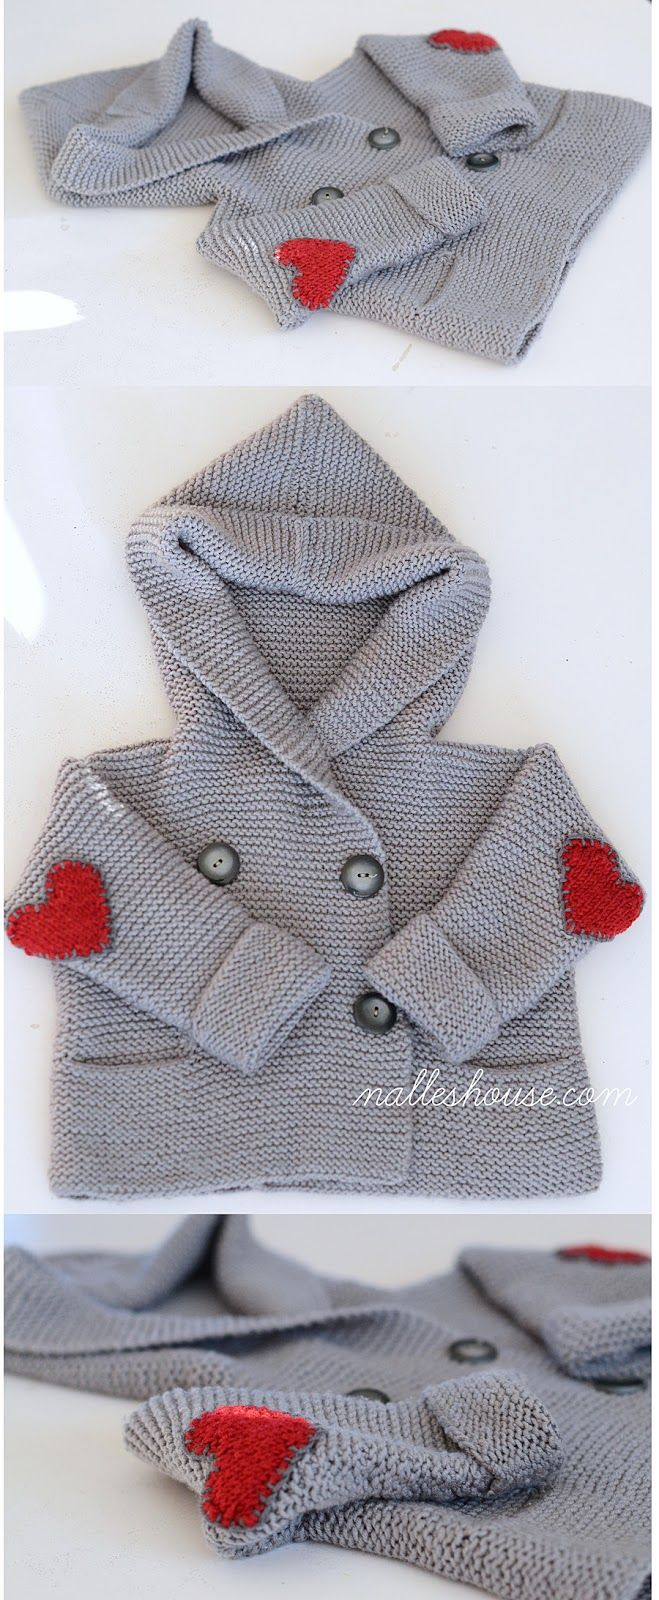 "The sweater pattern is ""duffle coat"" from Debbie Bliss' Essential Baby."